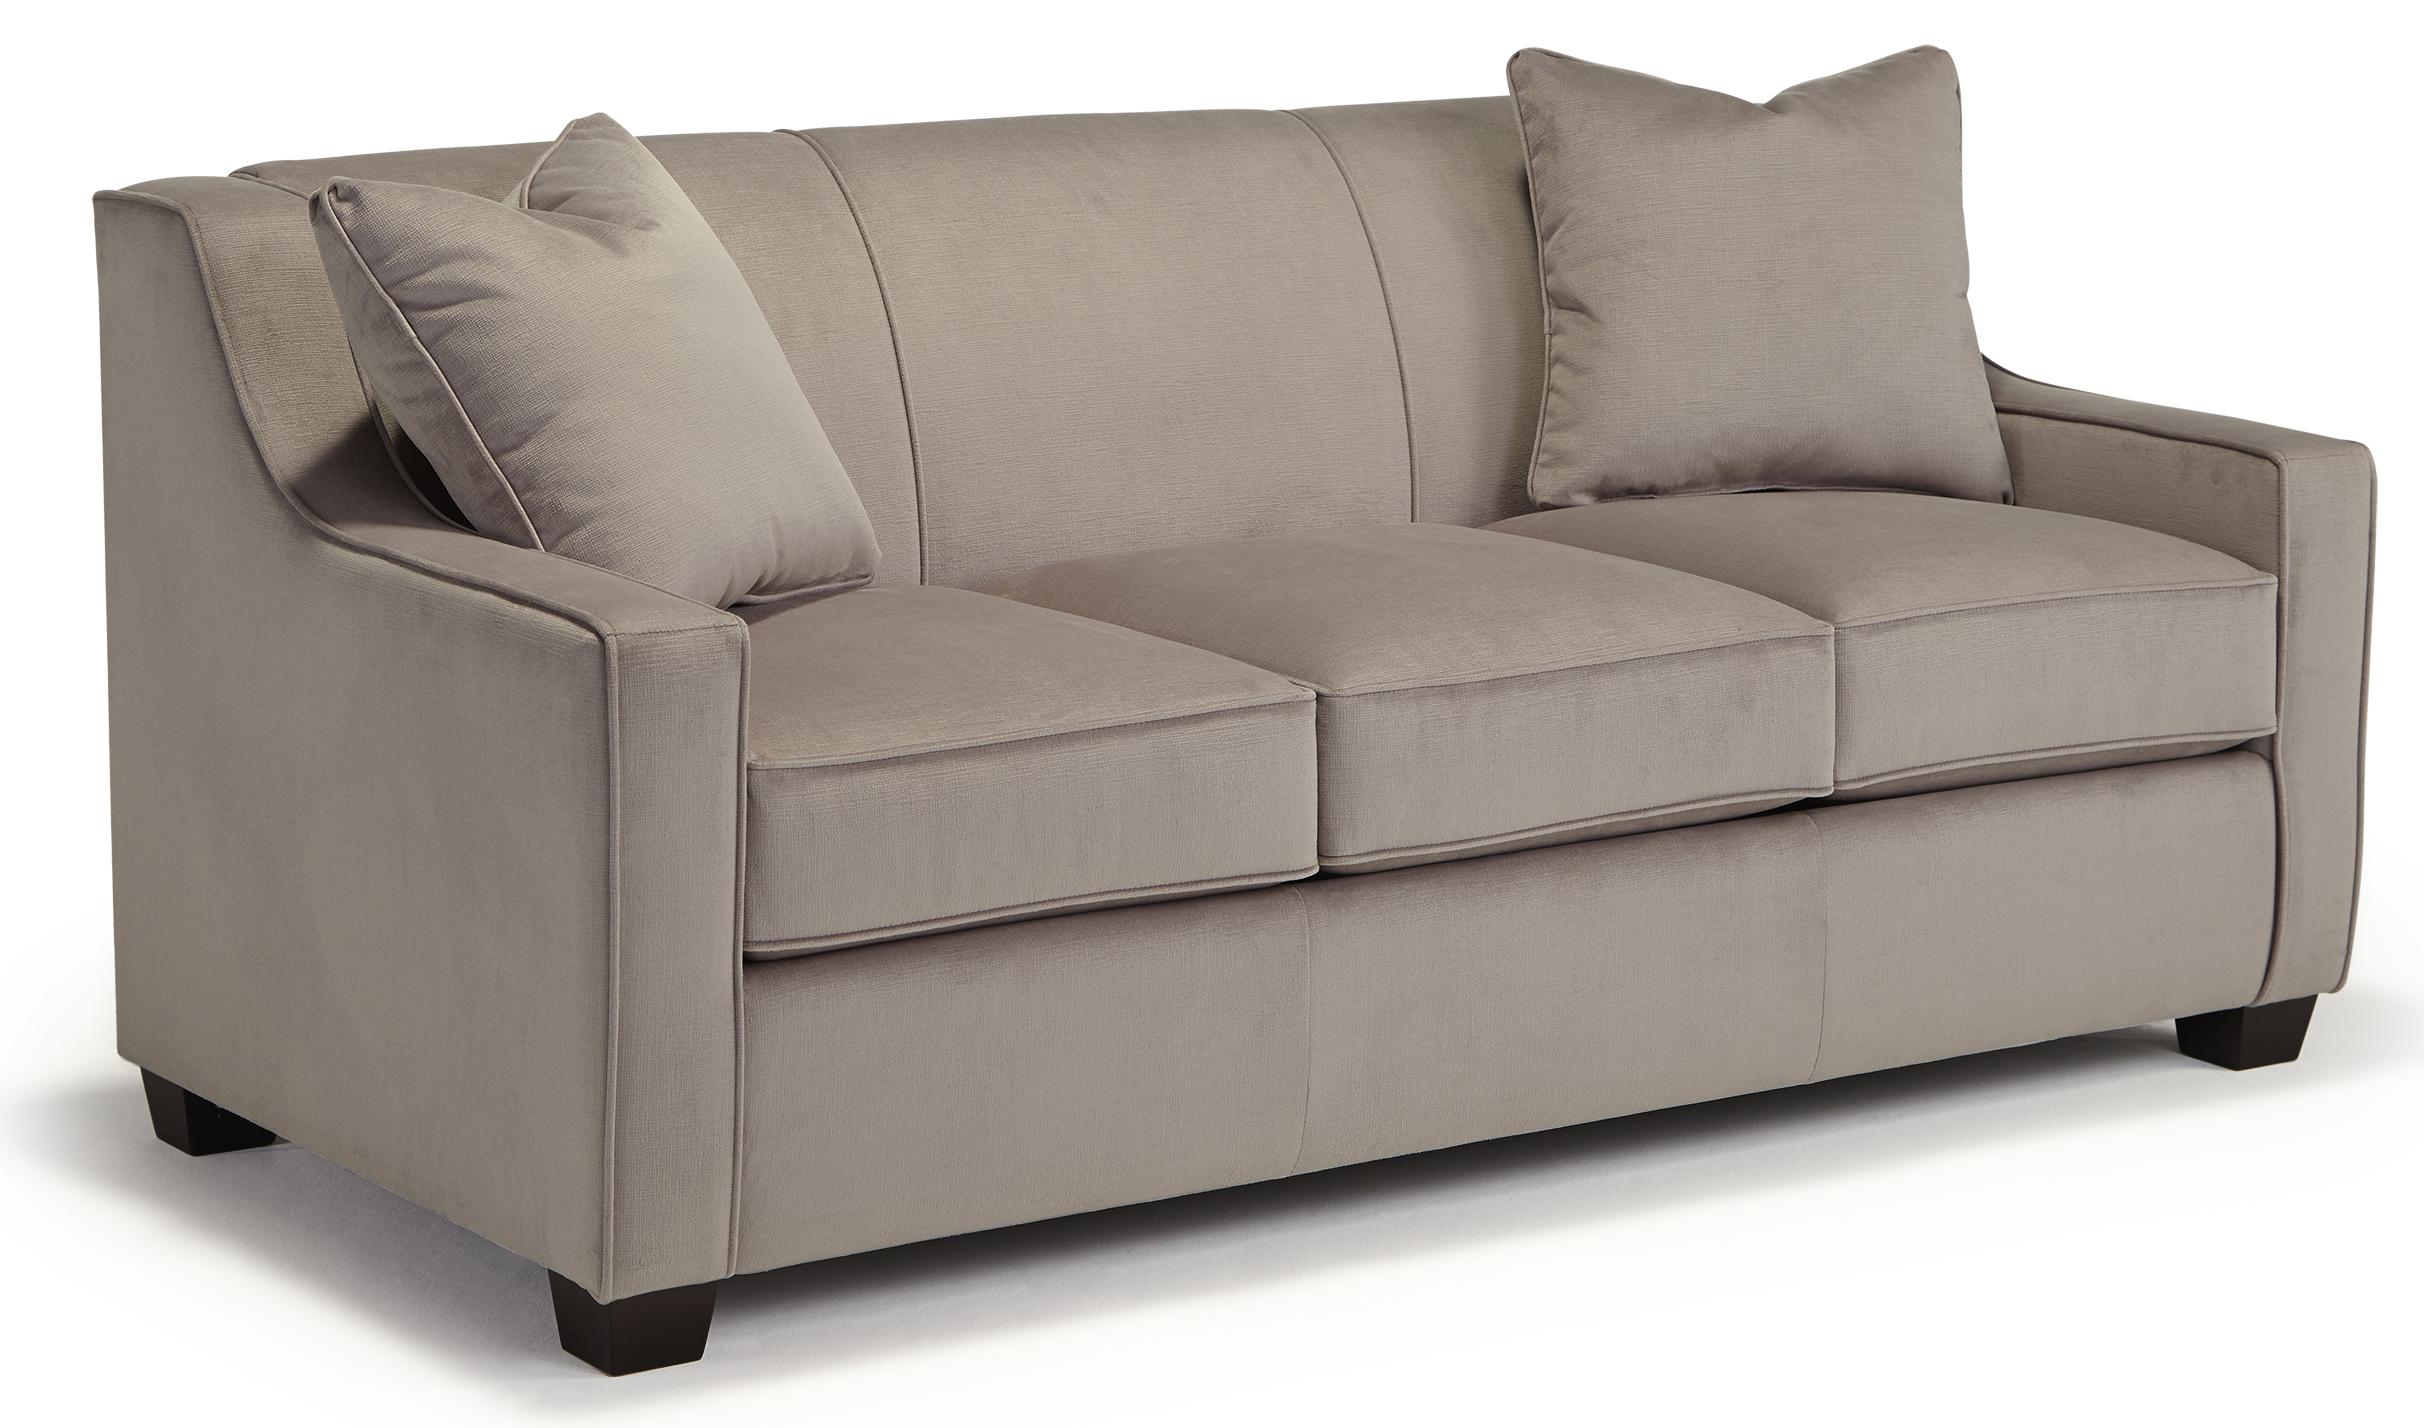 Marinette Full Size Sleeper Sofa w/ MemFoam Mattress by Best Home Furnishings at Best Home Furnishings